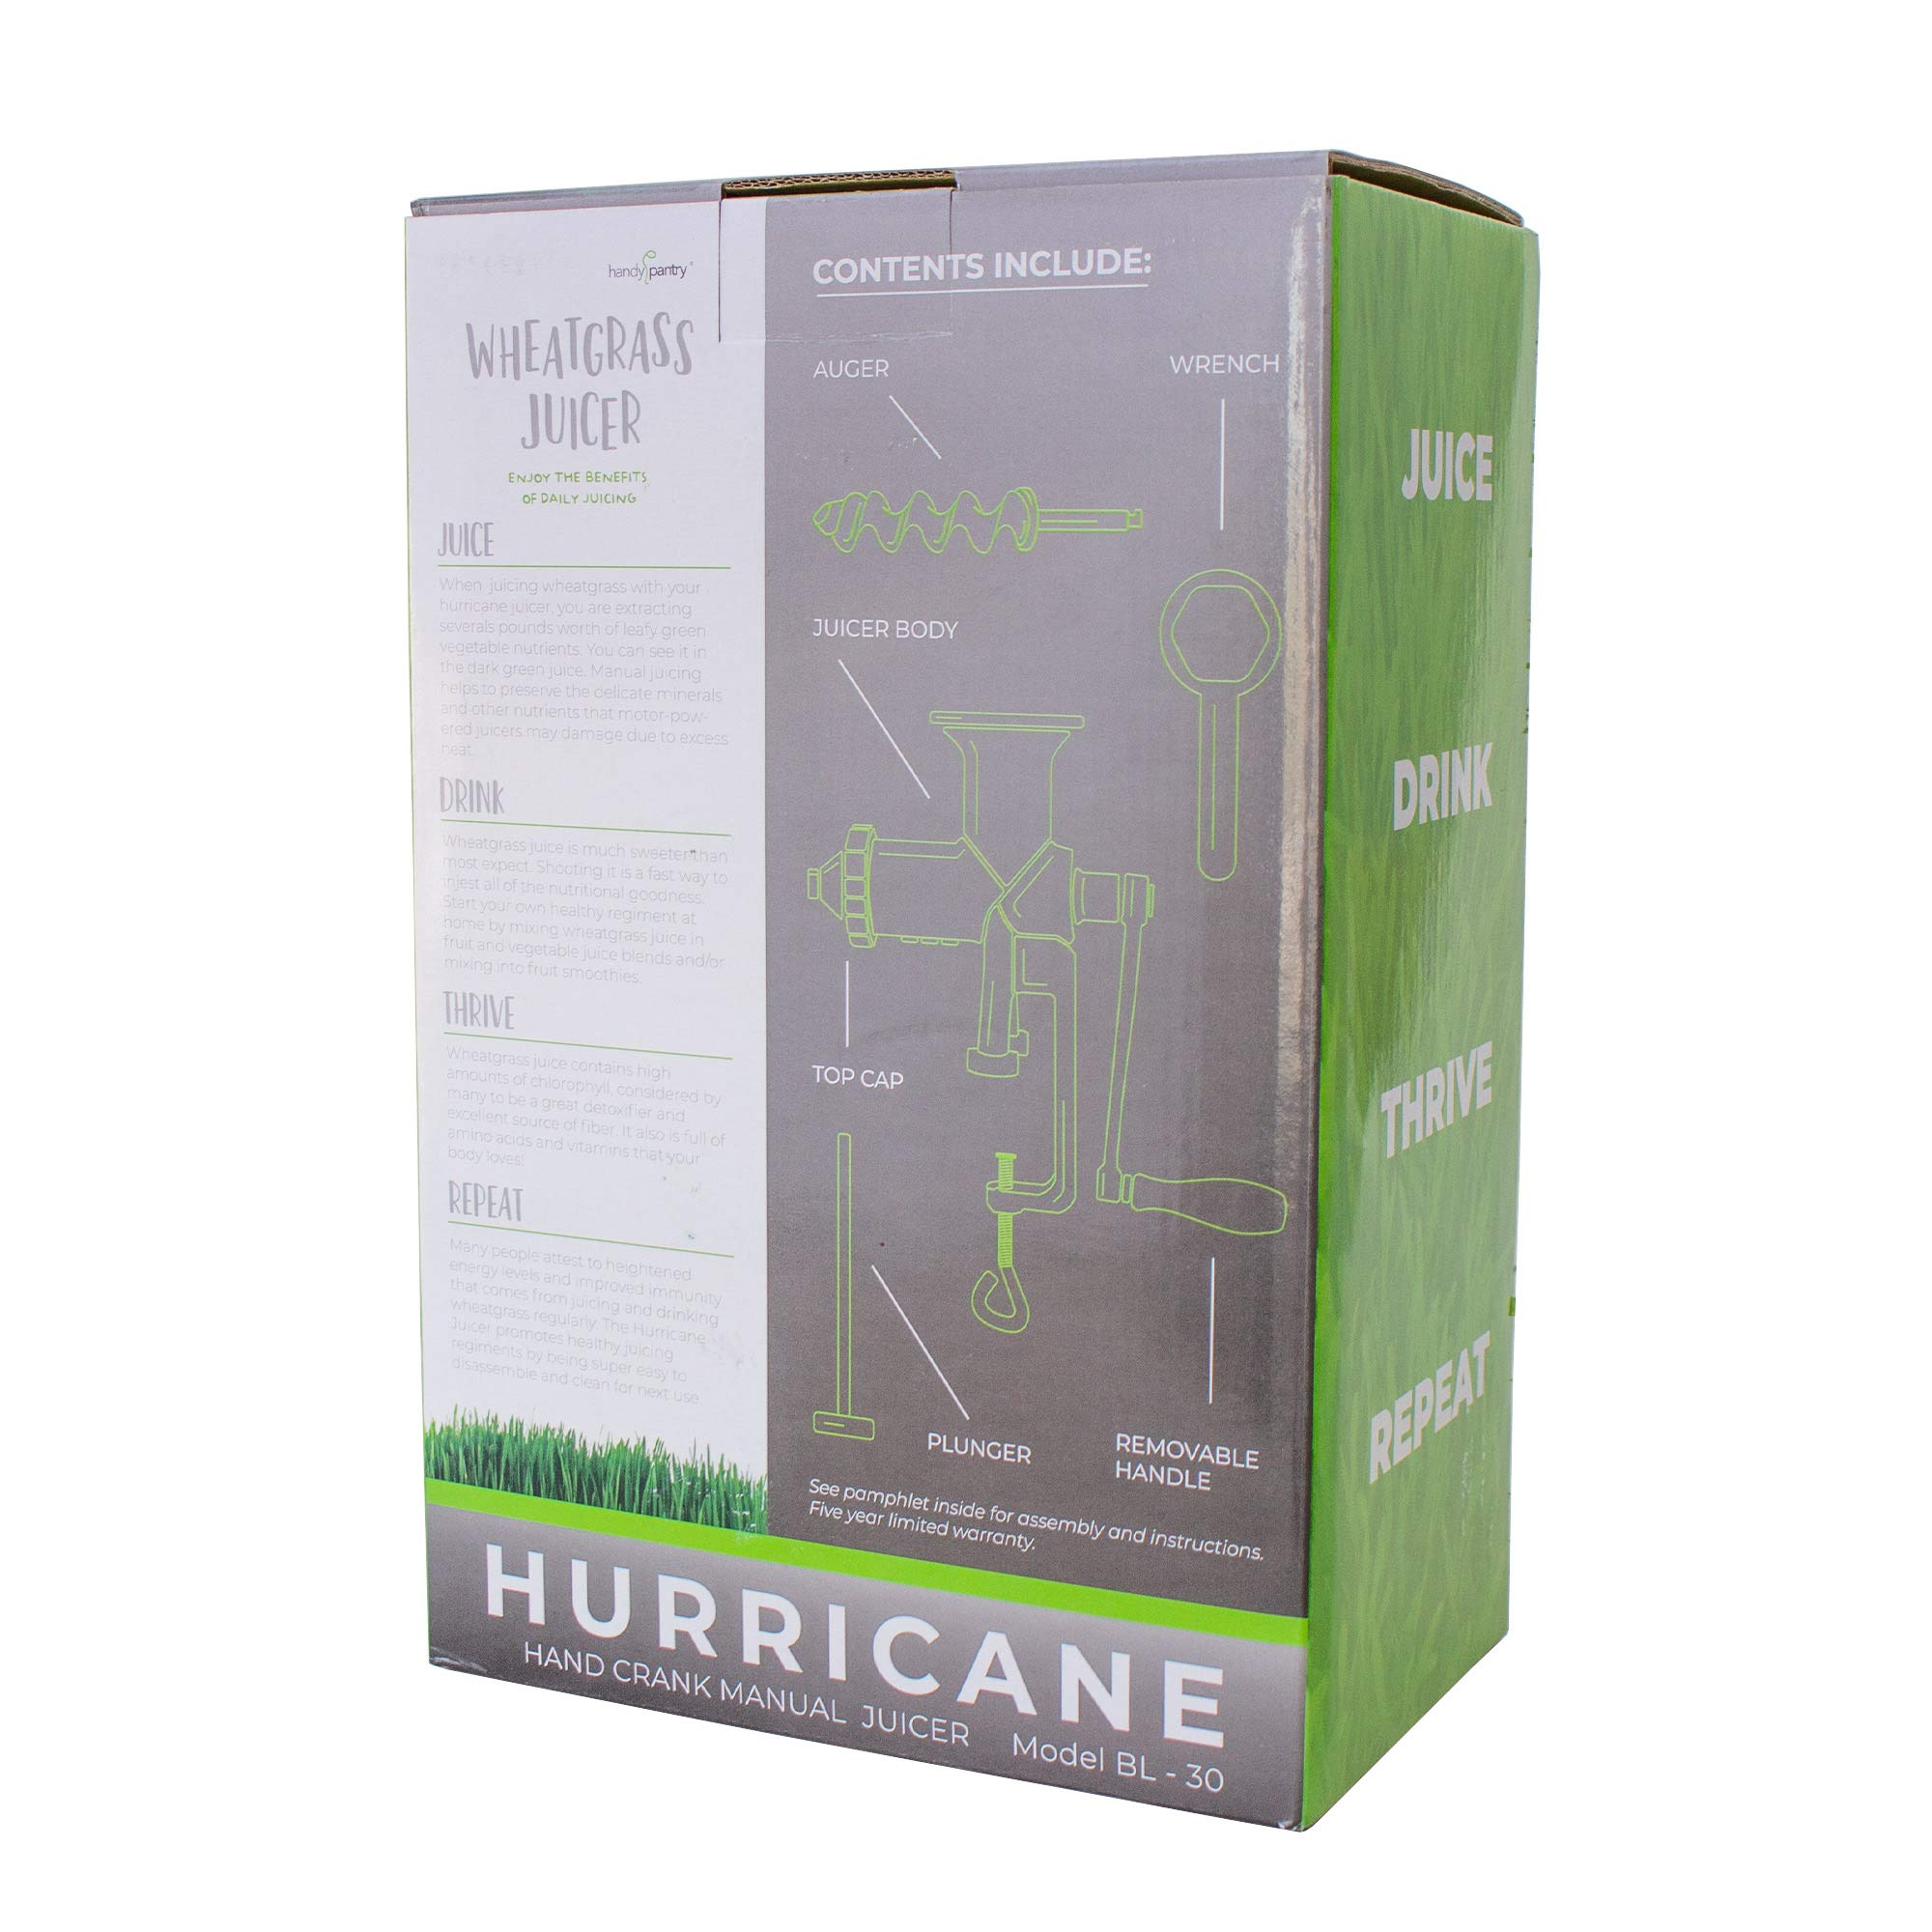 Handy Pantry Hj Hurricane Stainless Steel Manual